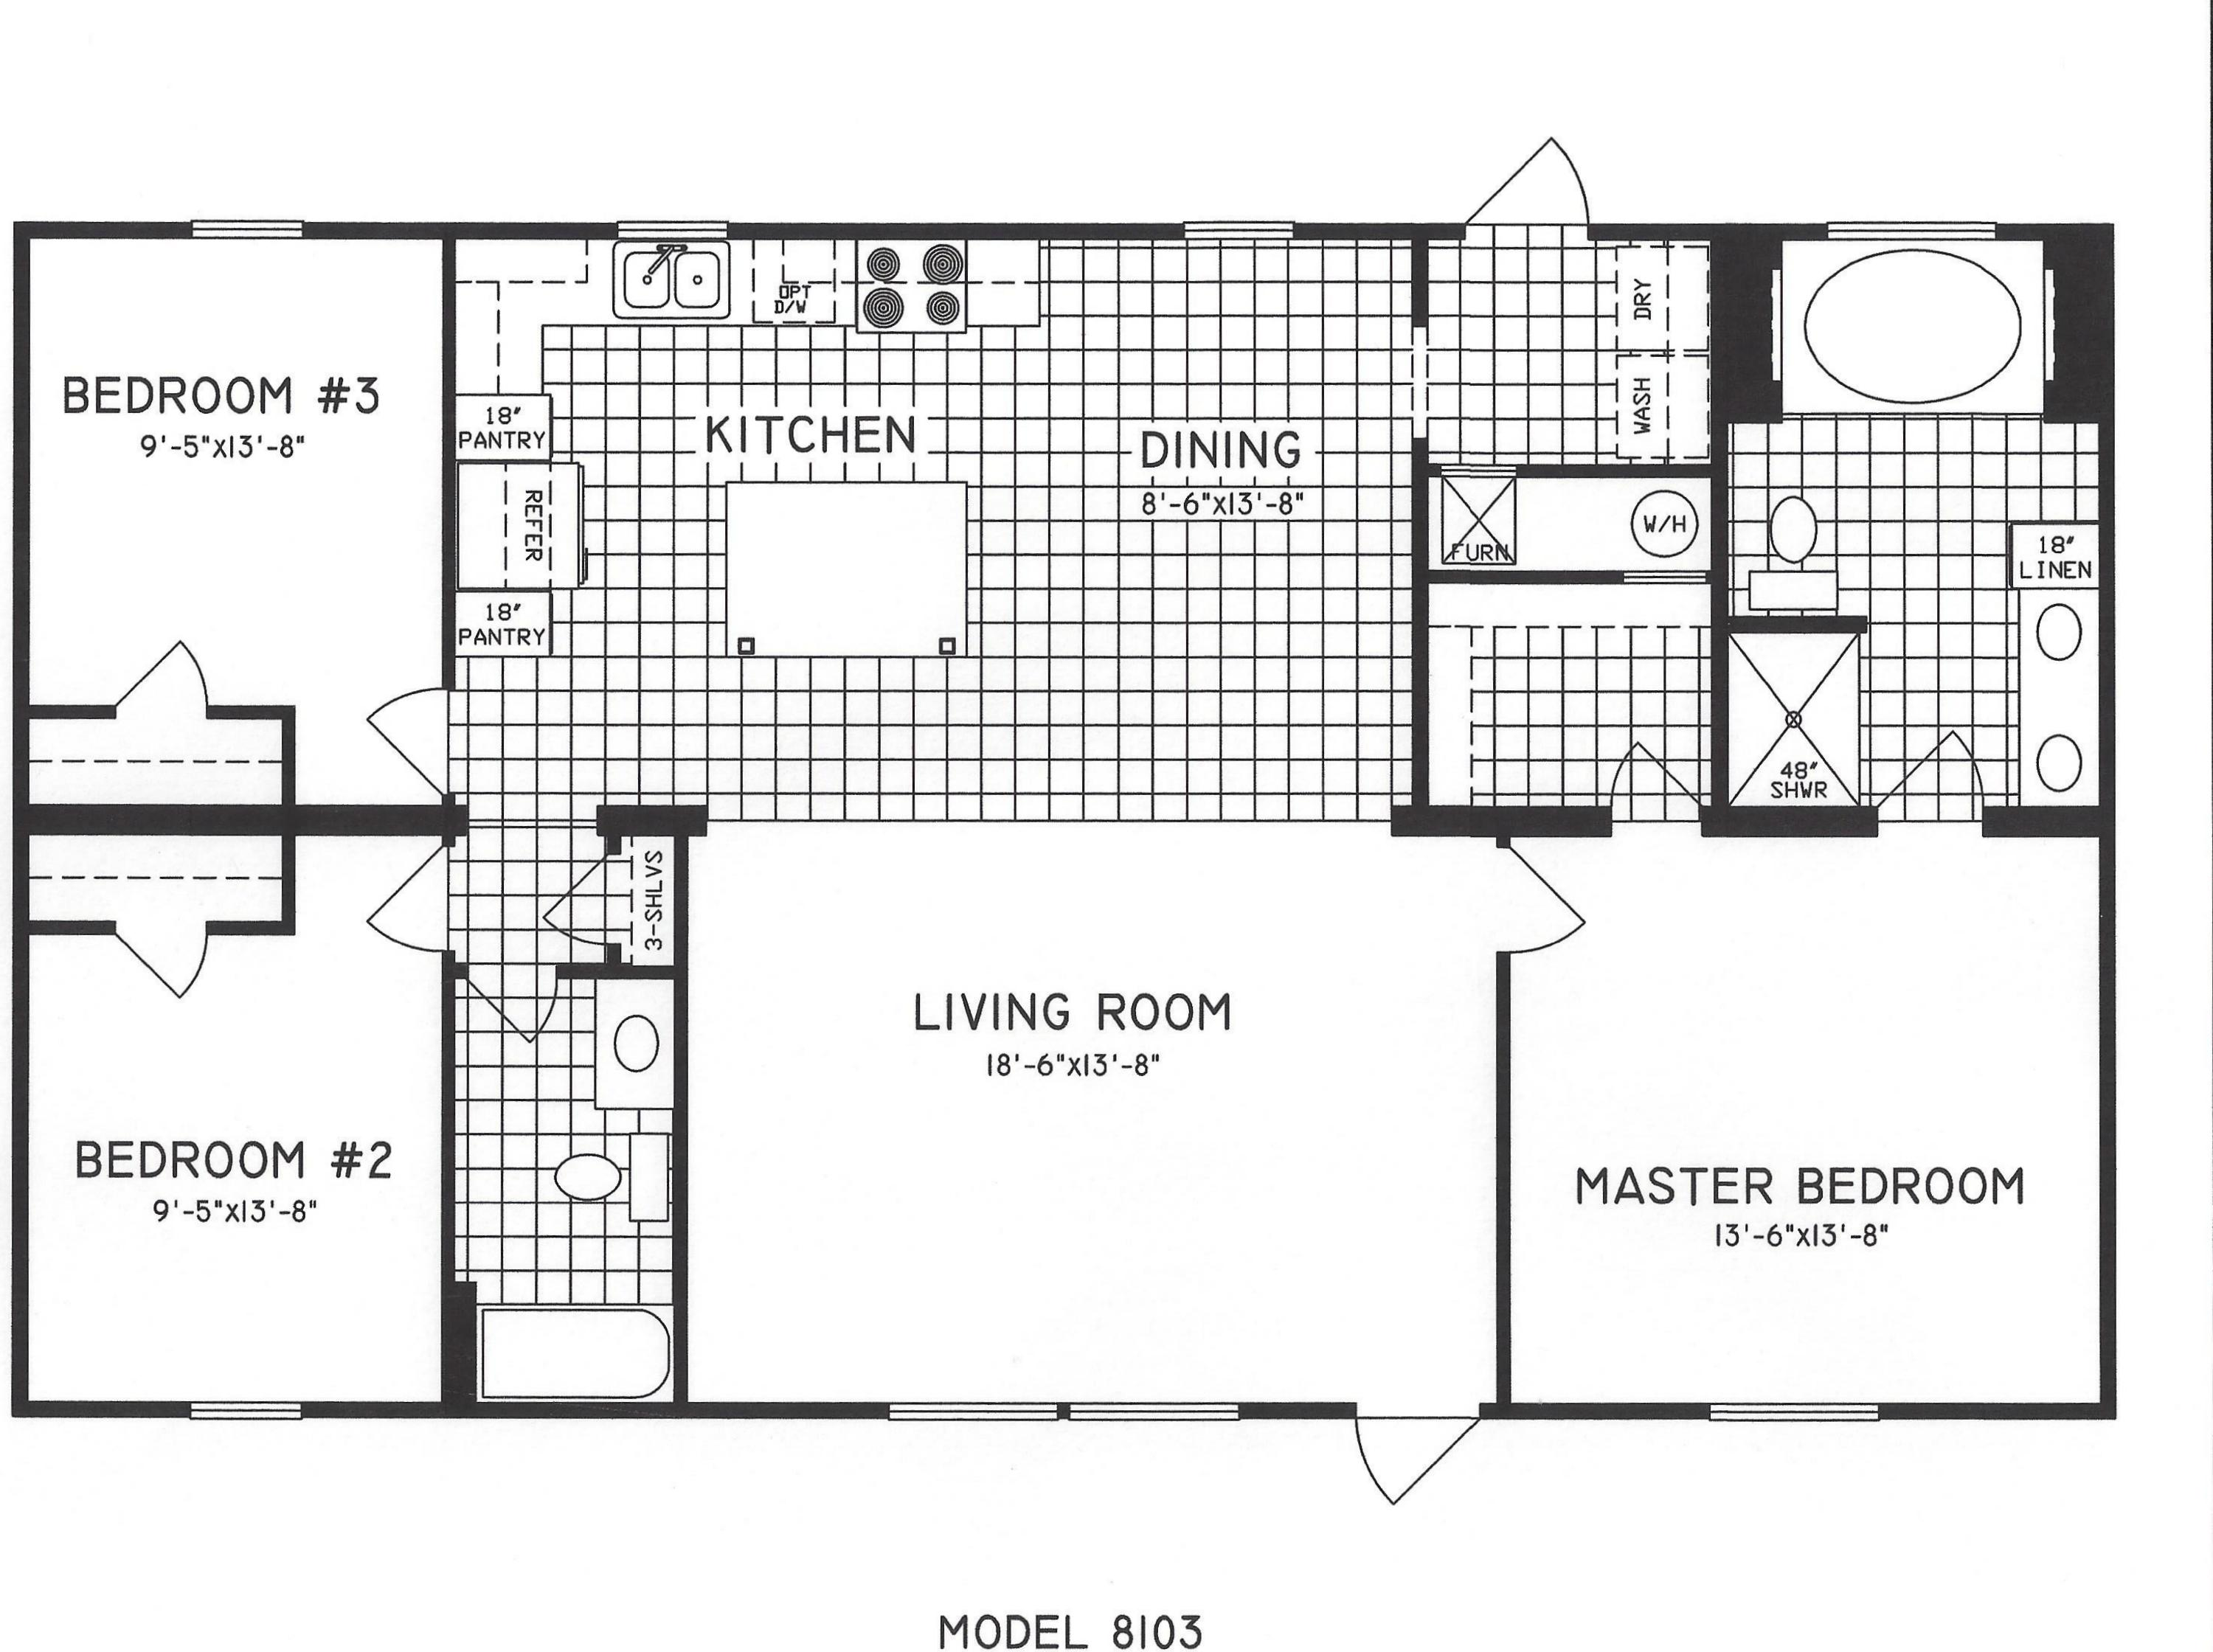 3 bedroom floor plan c 8103 hawks homes manufactured Floor plans 3 bedroom 2 bath